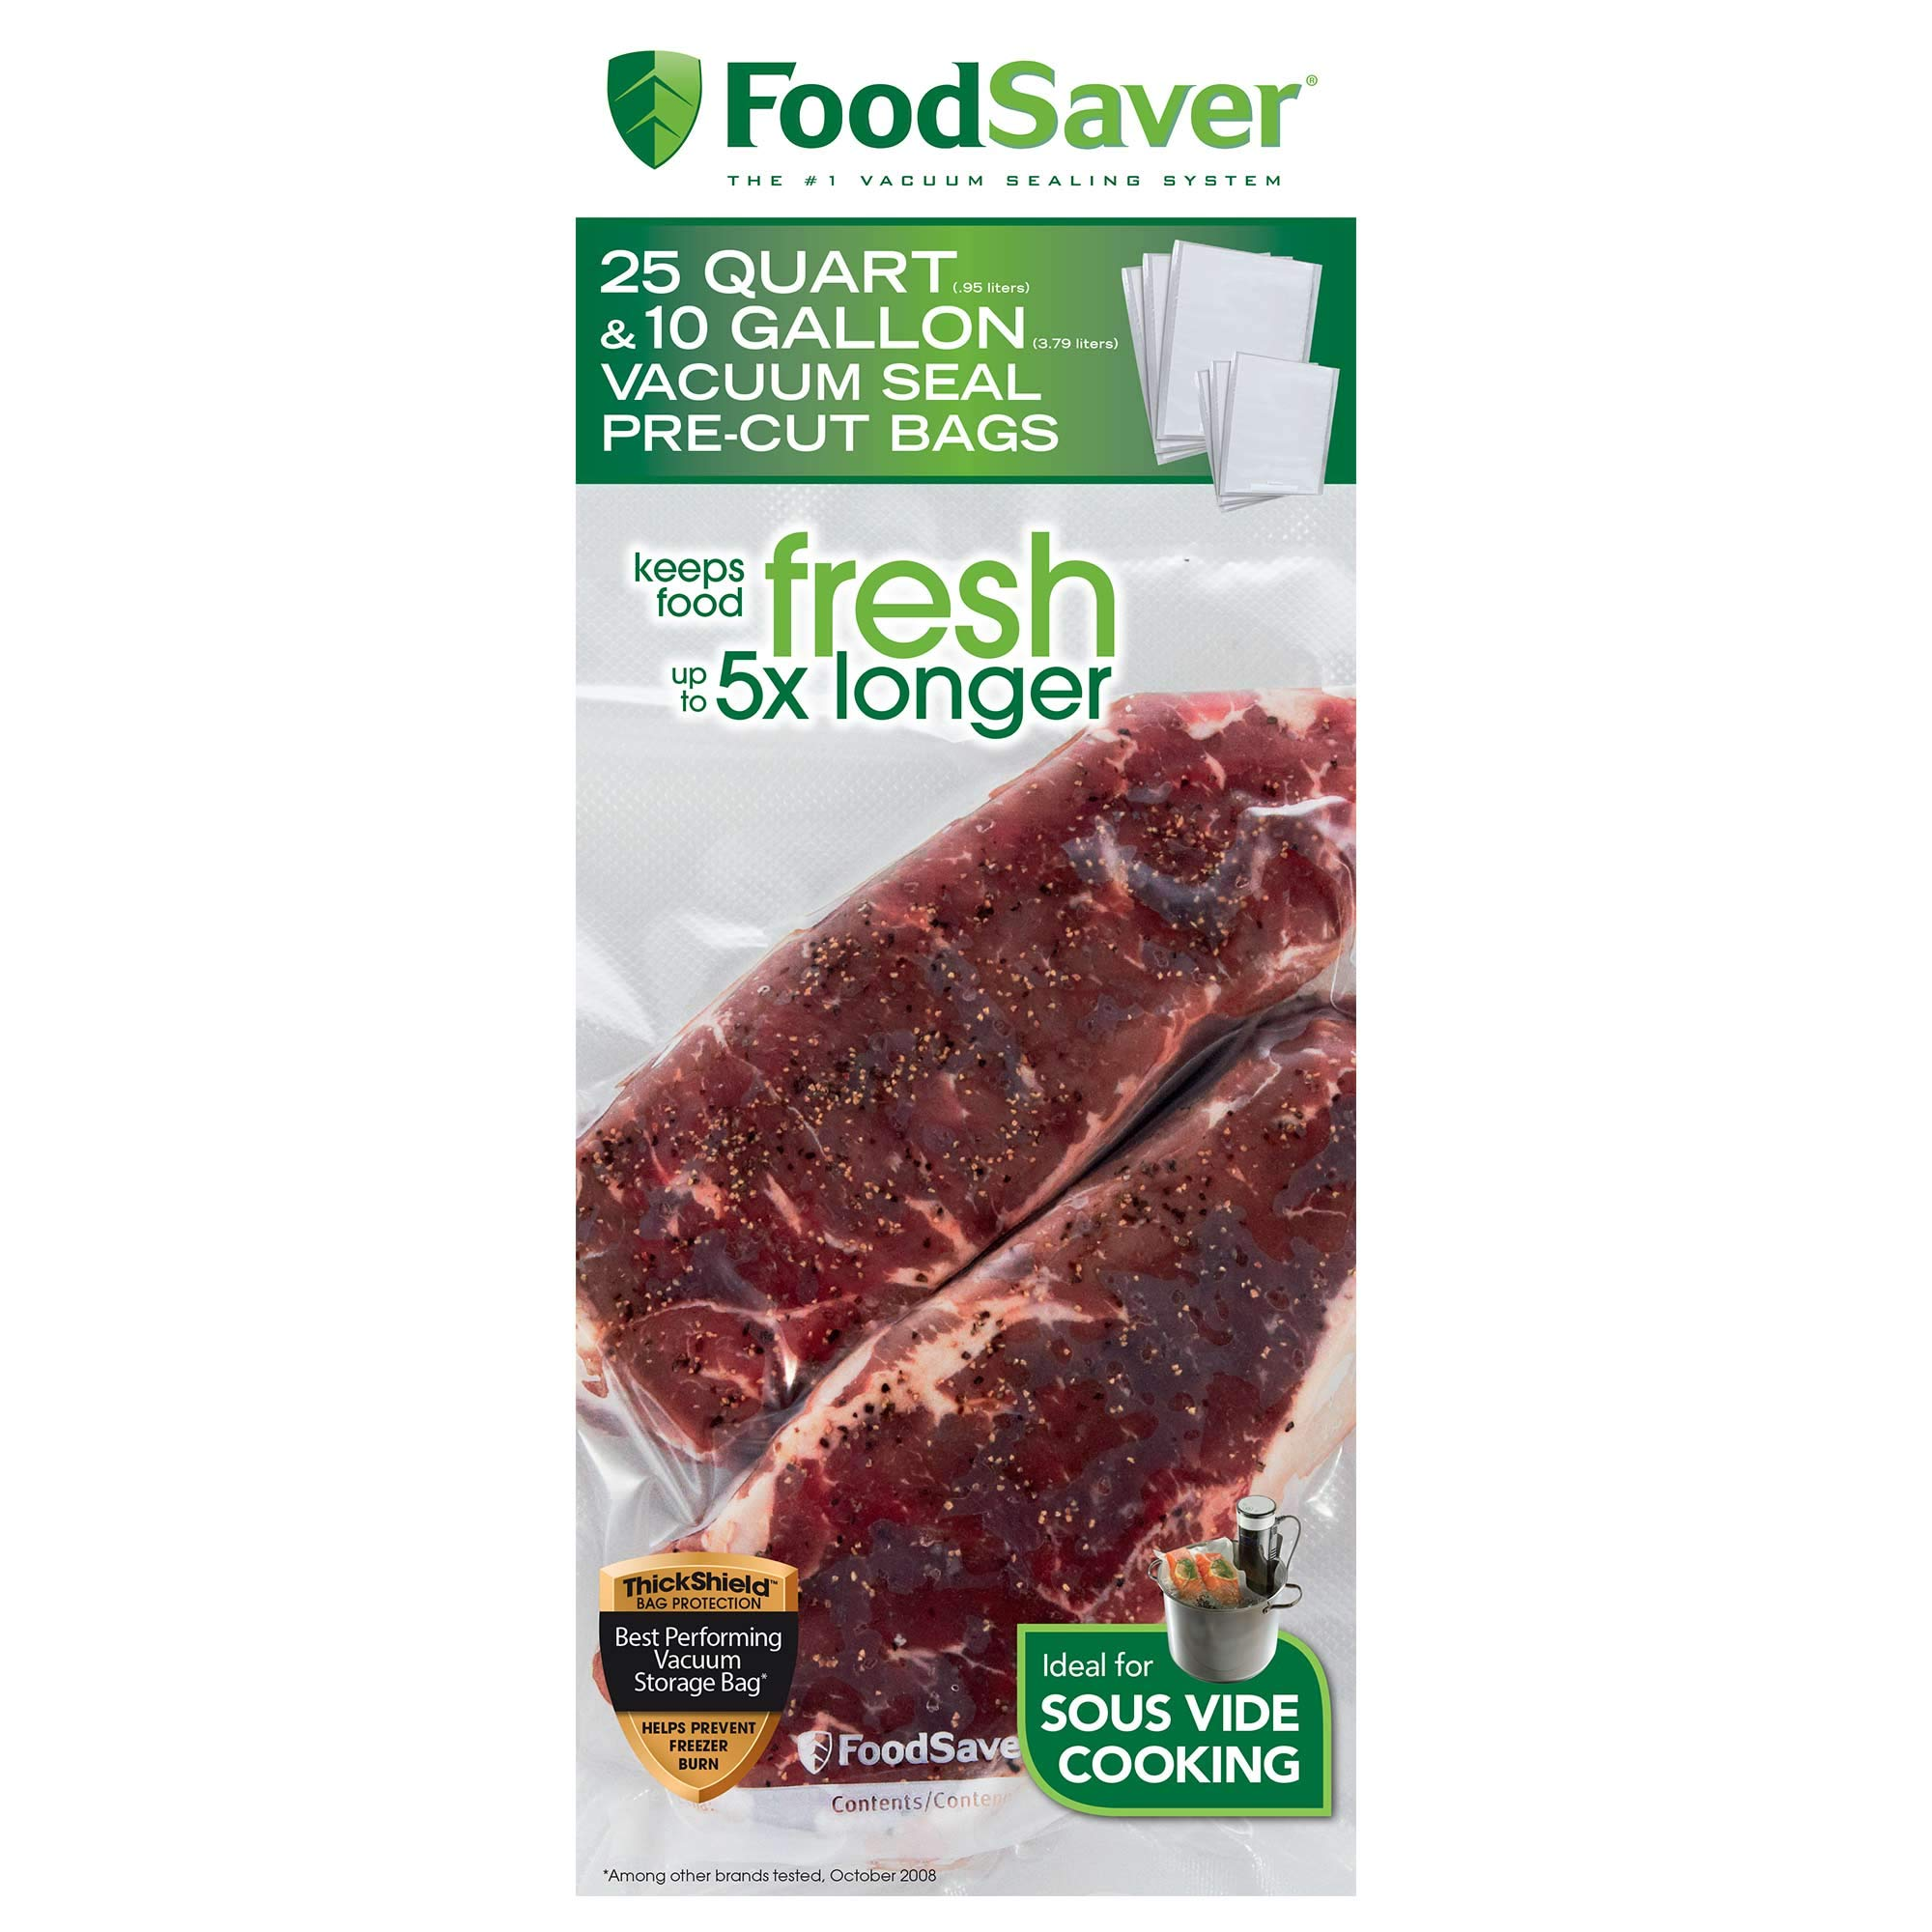 FoodSaver FBSQ25G10-NP Pre-Cut Vacuum Seal Bags Combo Pack for Food Preservation & Sous Vide Cooking, 25 Quart-Size & 10 Gallon-Size Bags by FoodSaver